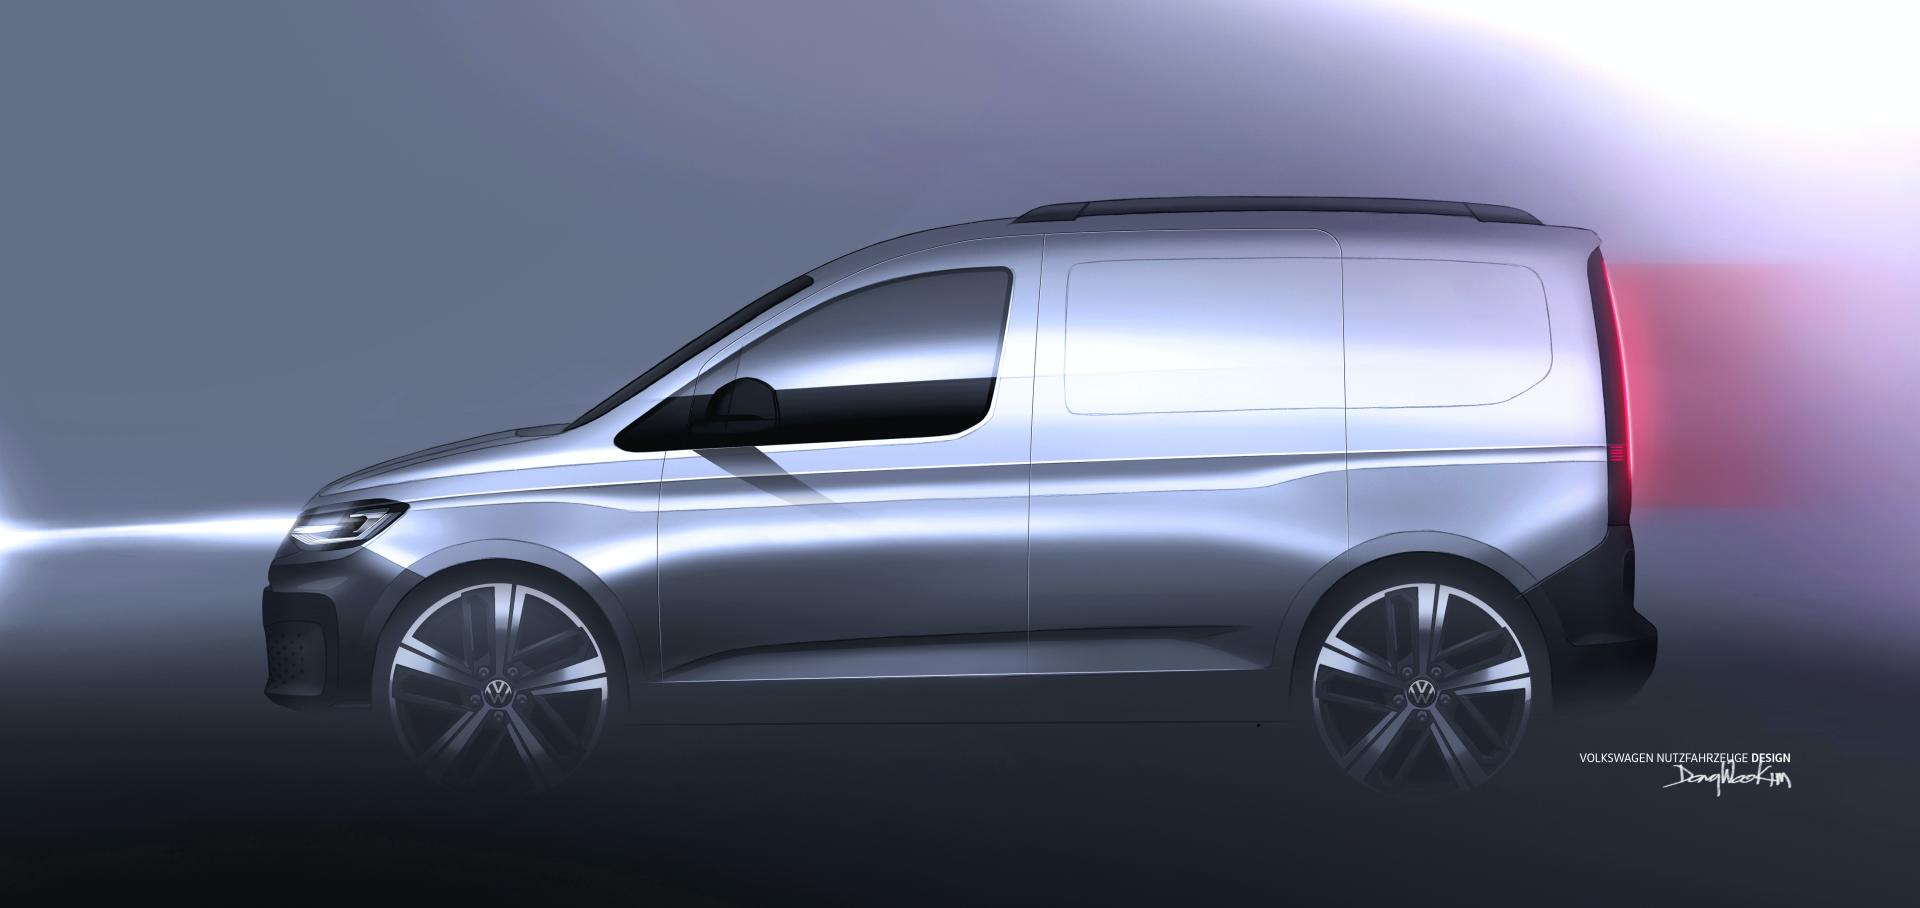 2021 volkswagen caddy leaked official photos confirm new